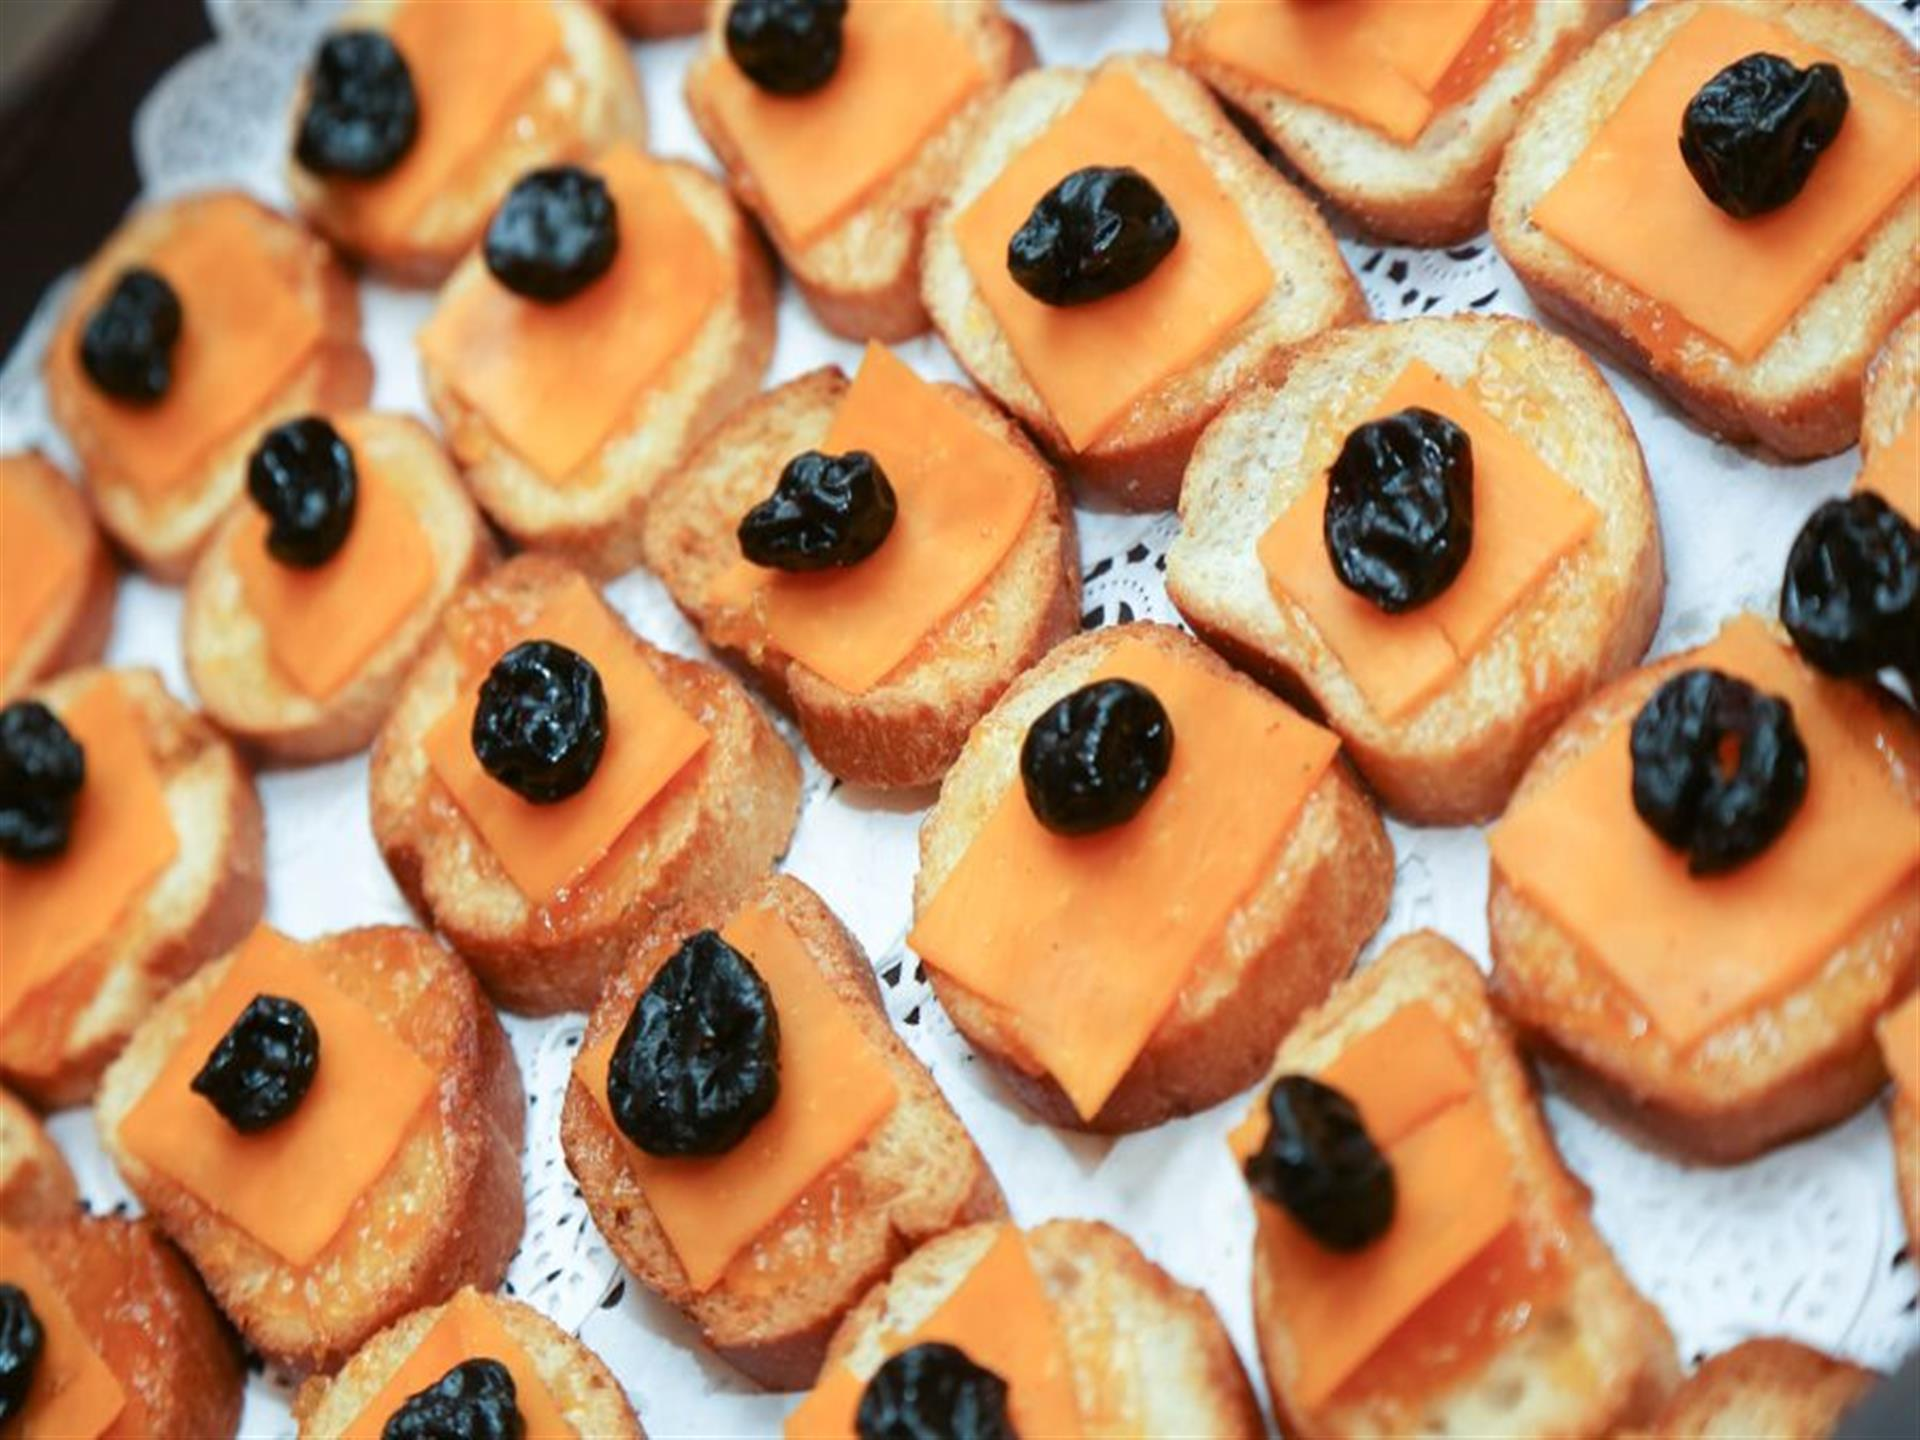 crustini topped with cheese and fruit